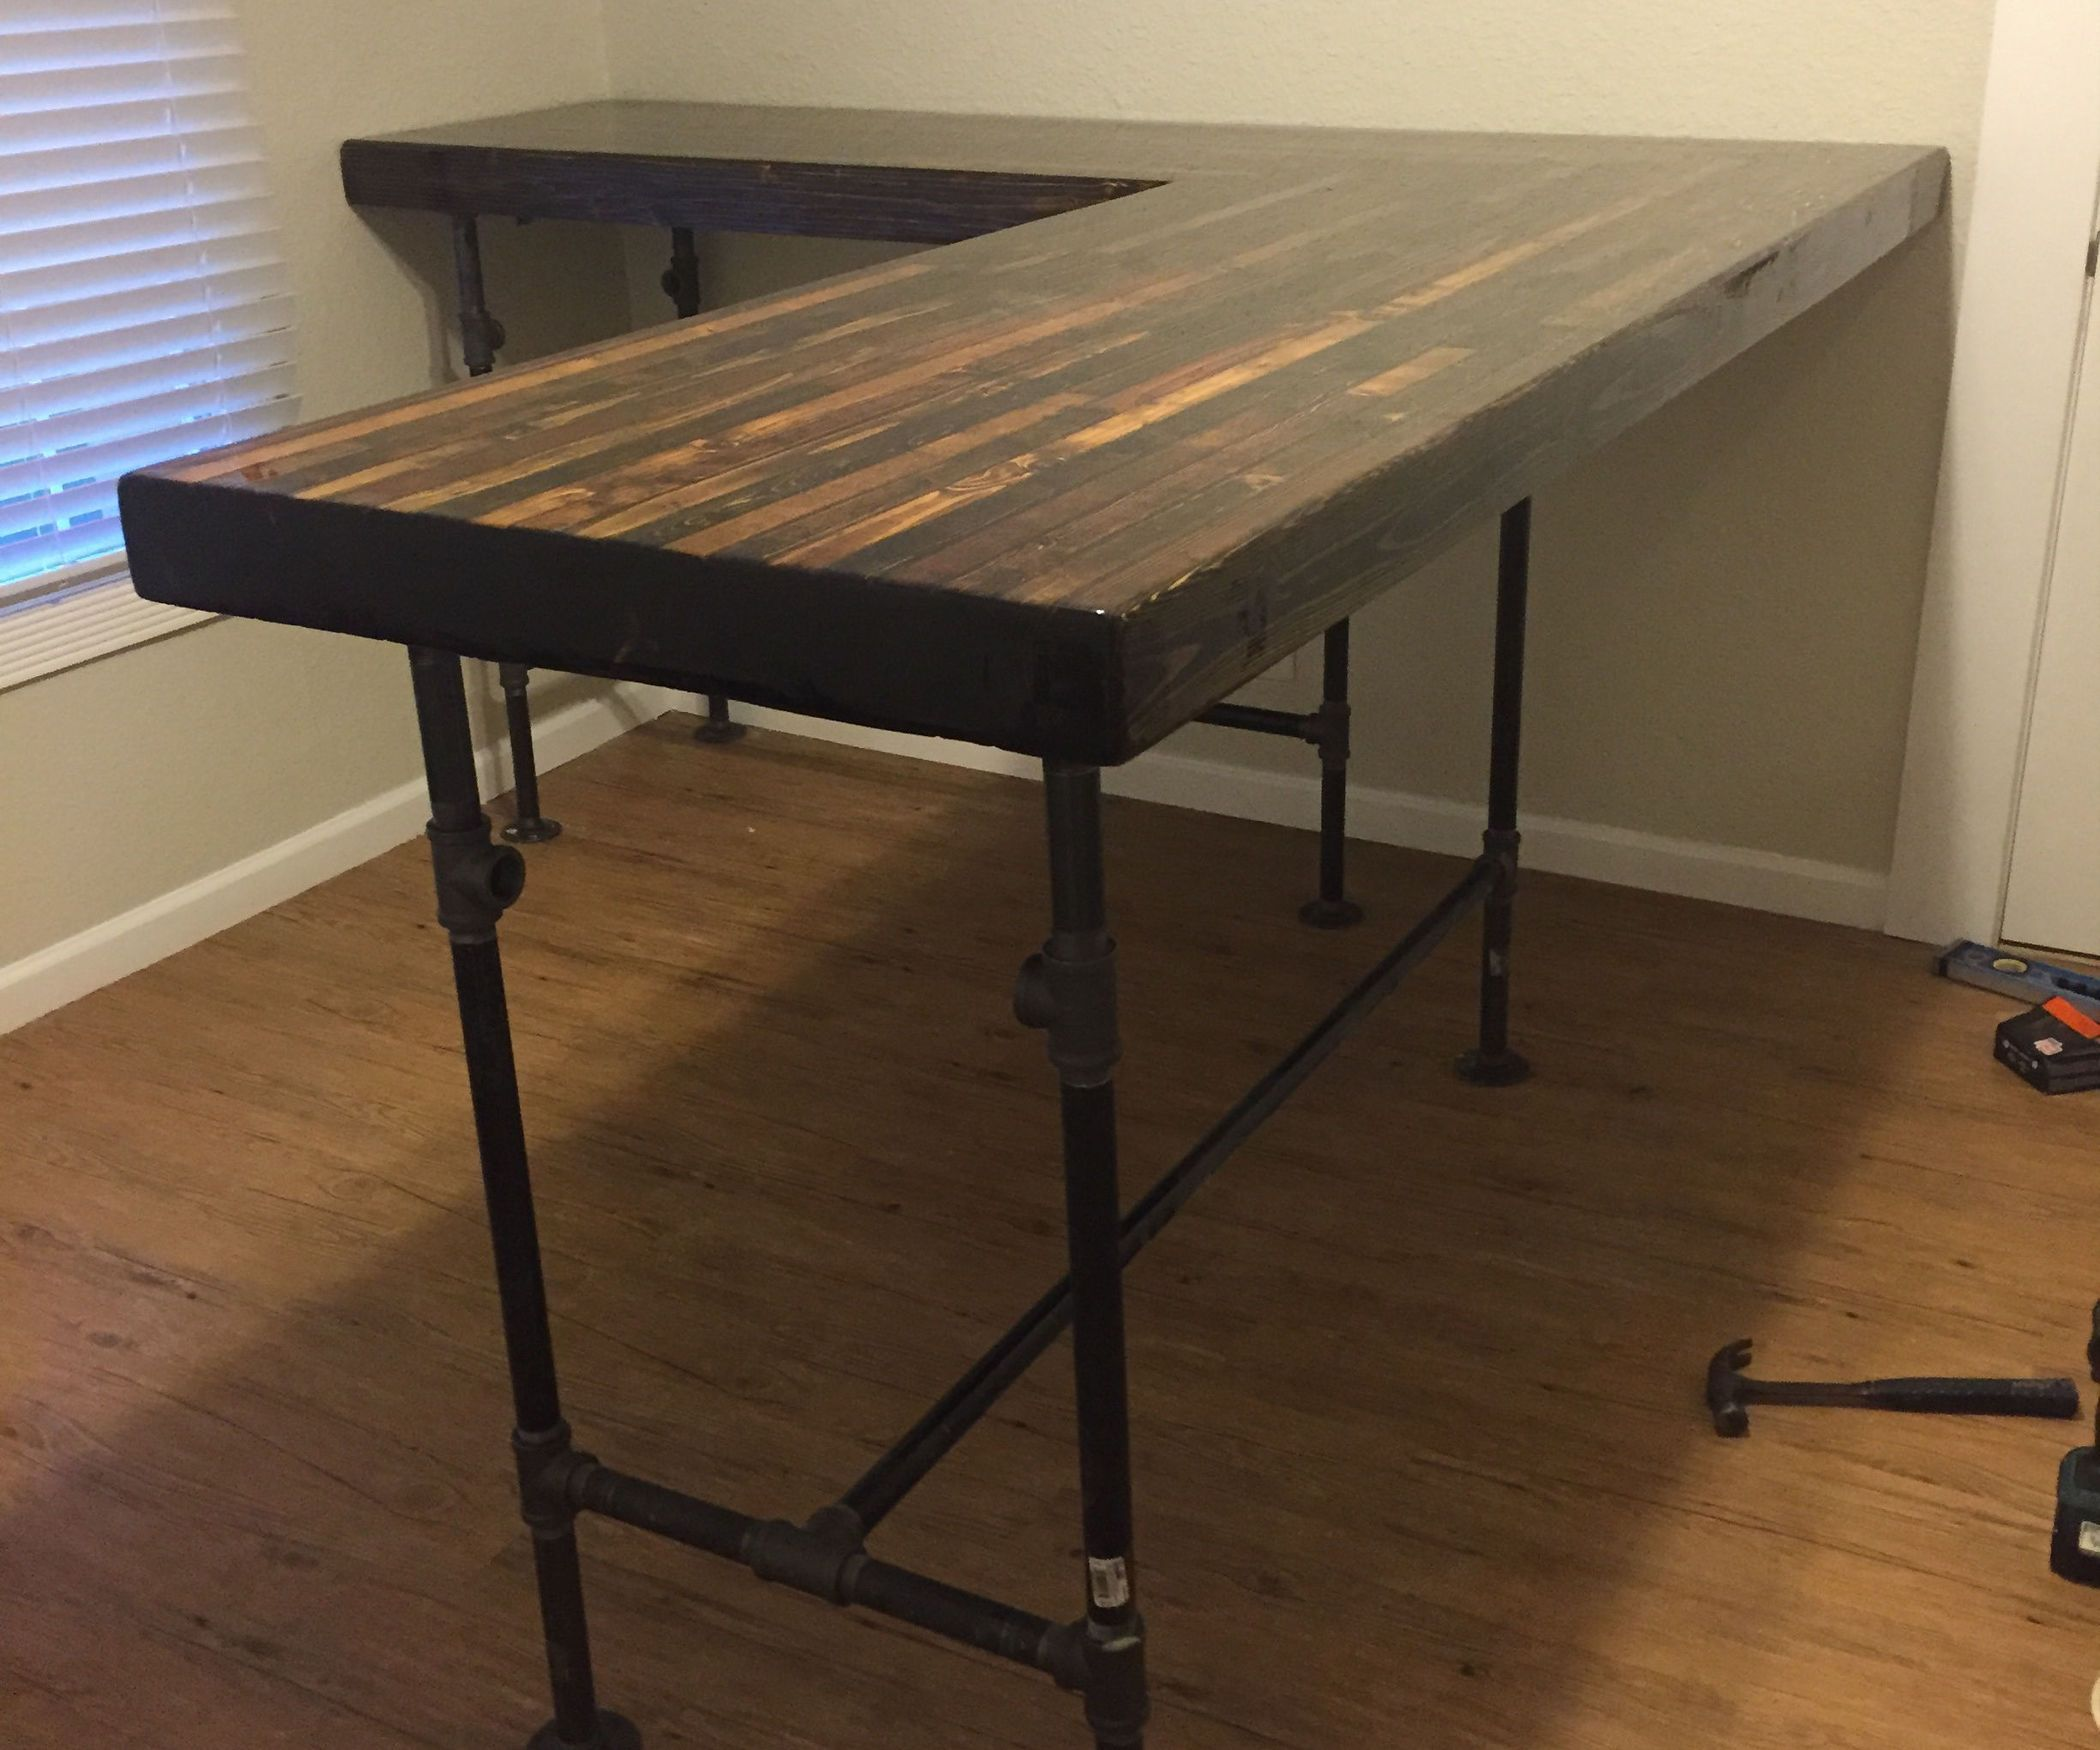 These Are Instructions For How To Build A Standing Desk Out Of 2x4s And Iron Plumbing Pipe I Recently Built The L Shaped Desk Seen In The Picture Which I